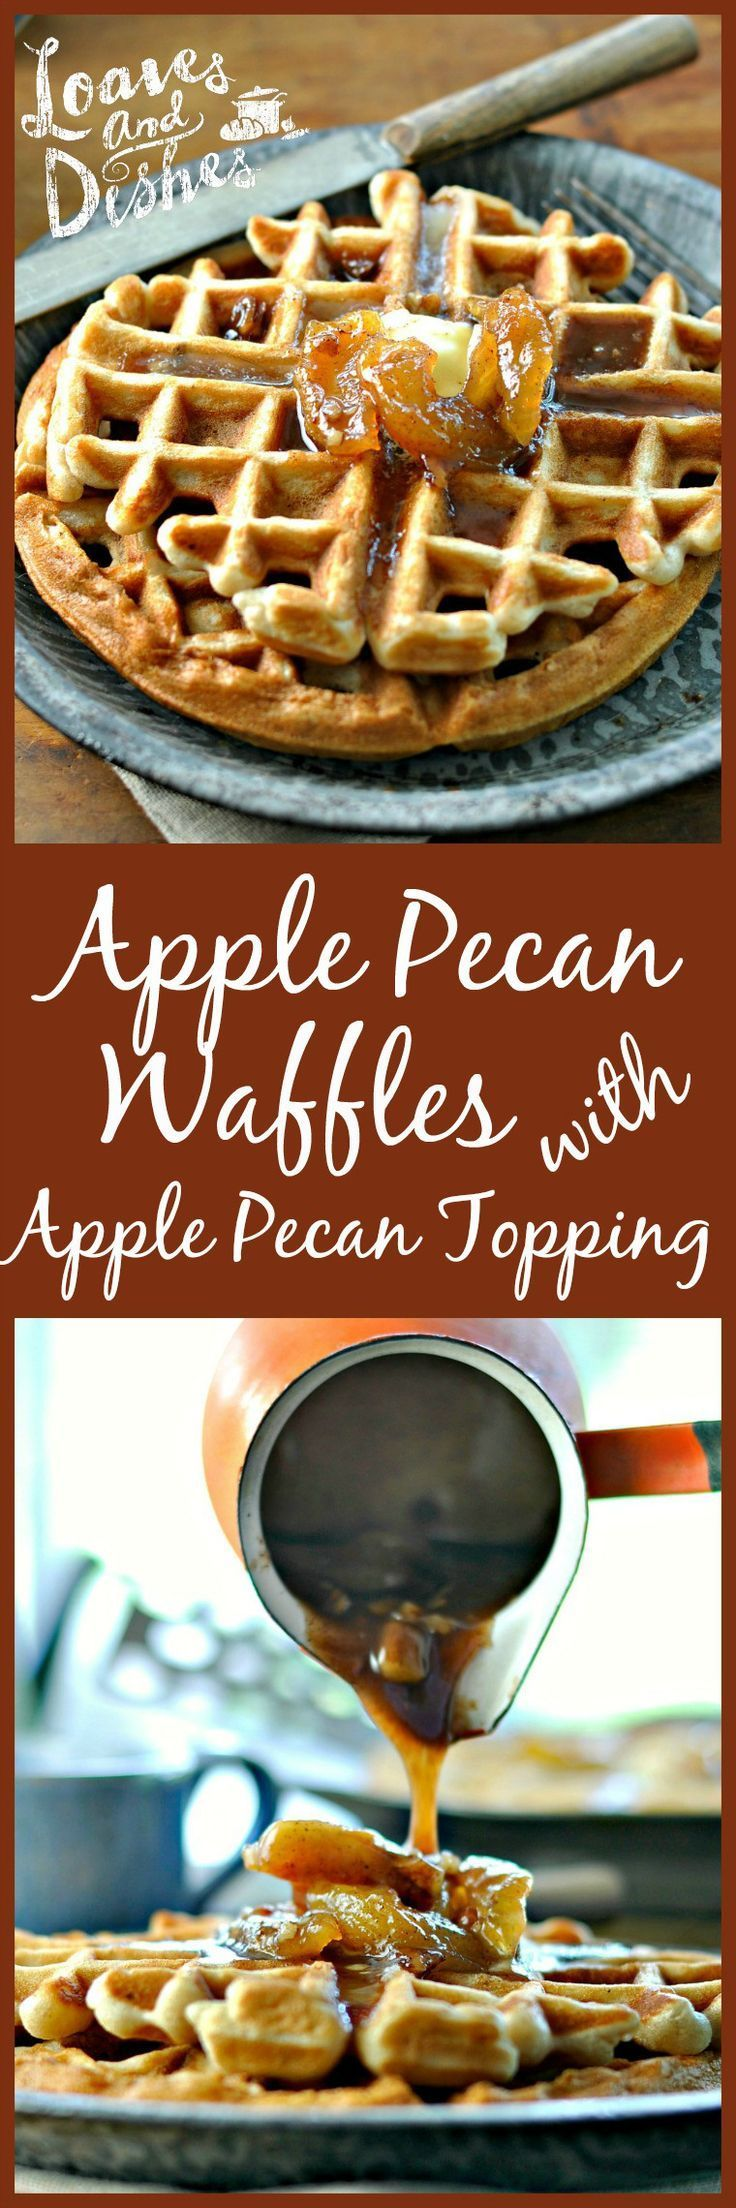 yummy and EASY waffle recipe? Apple Pecan Waffles with Apple Pecan ...